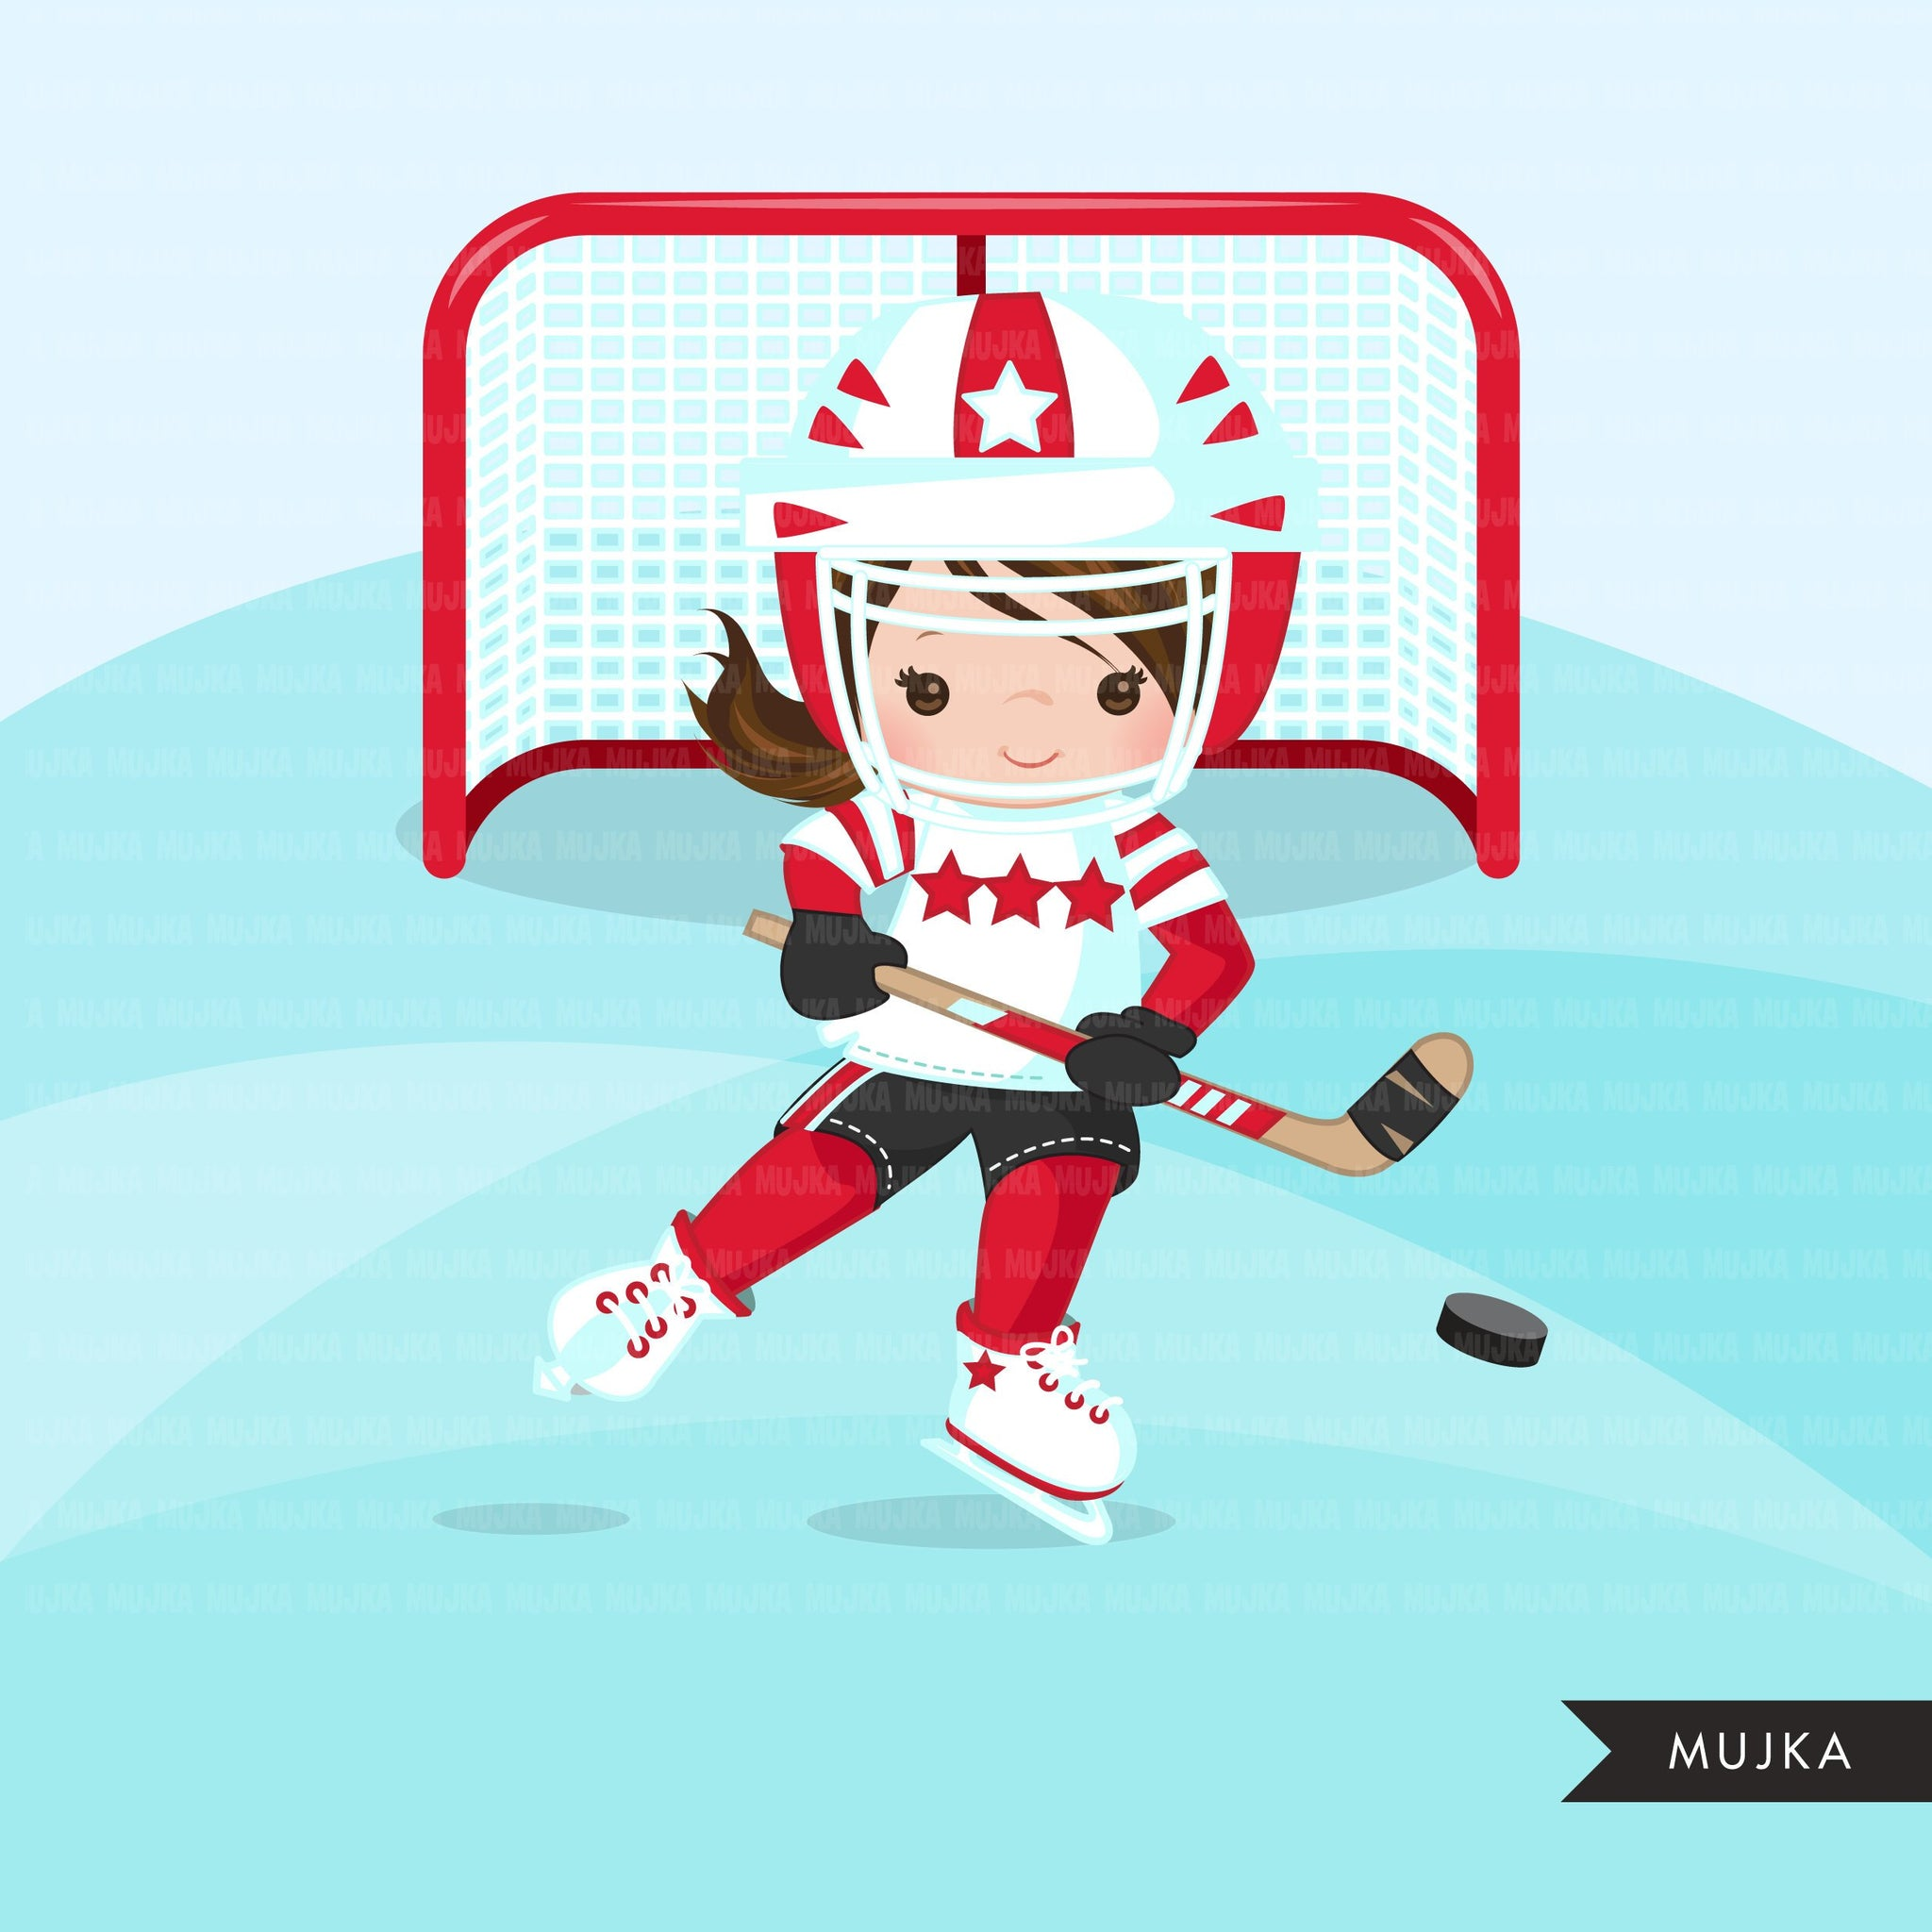 Hockey clipart, Girl in red jersey